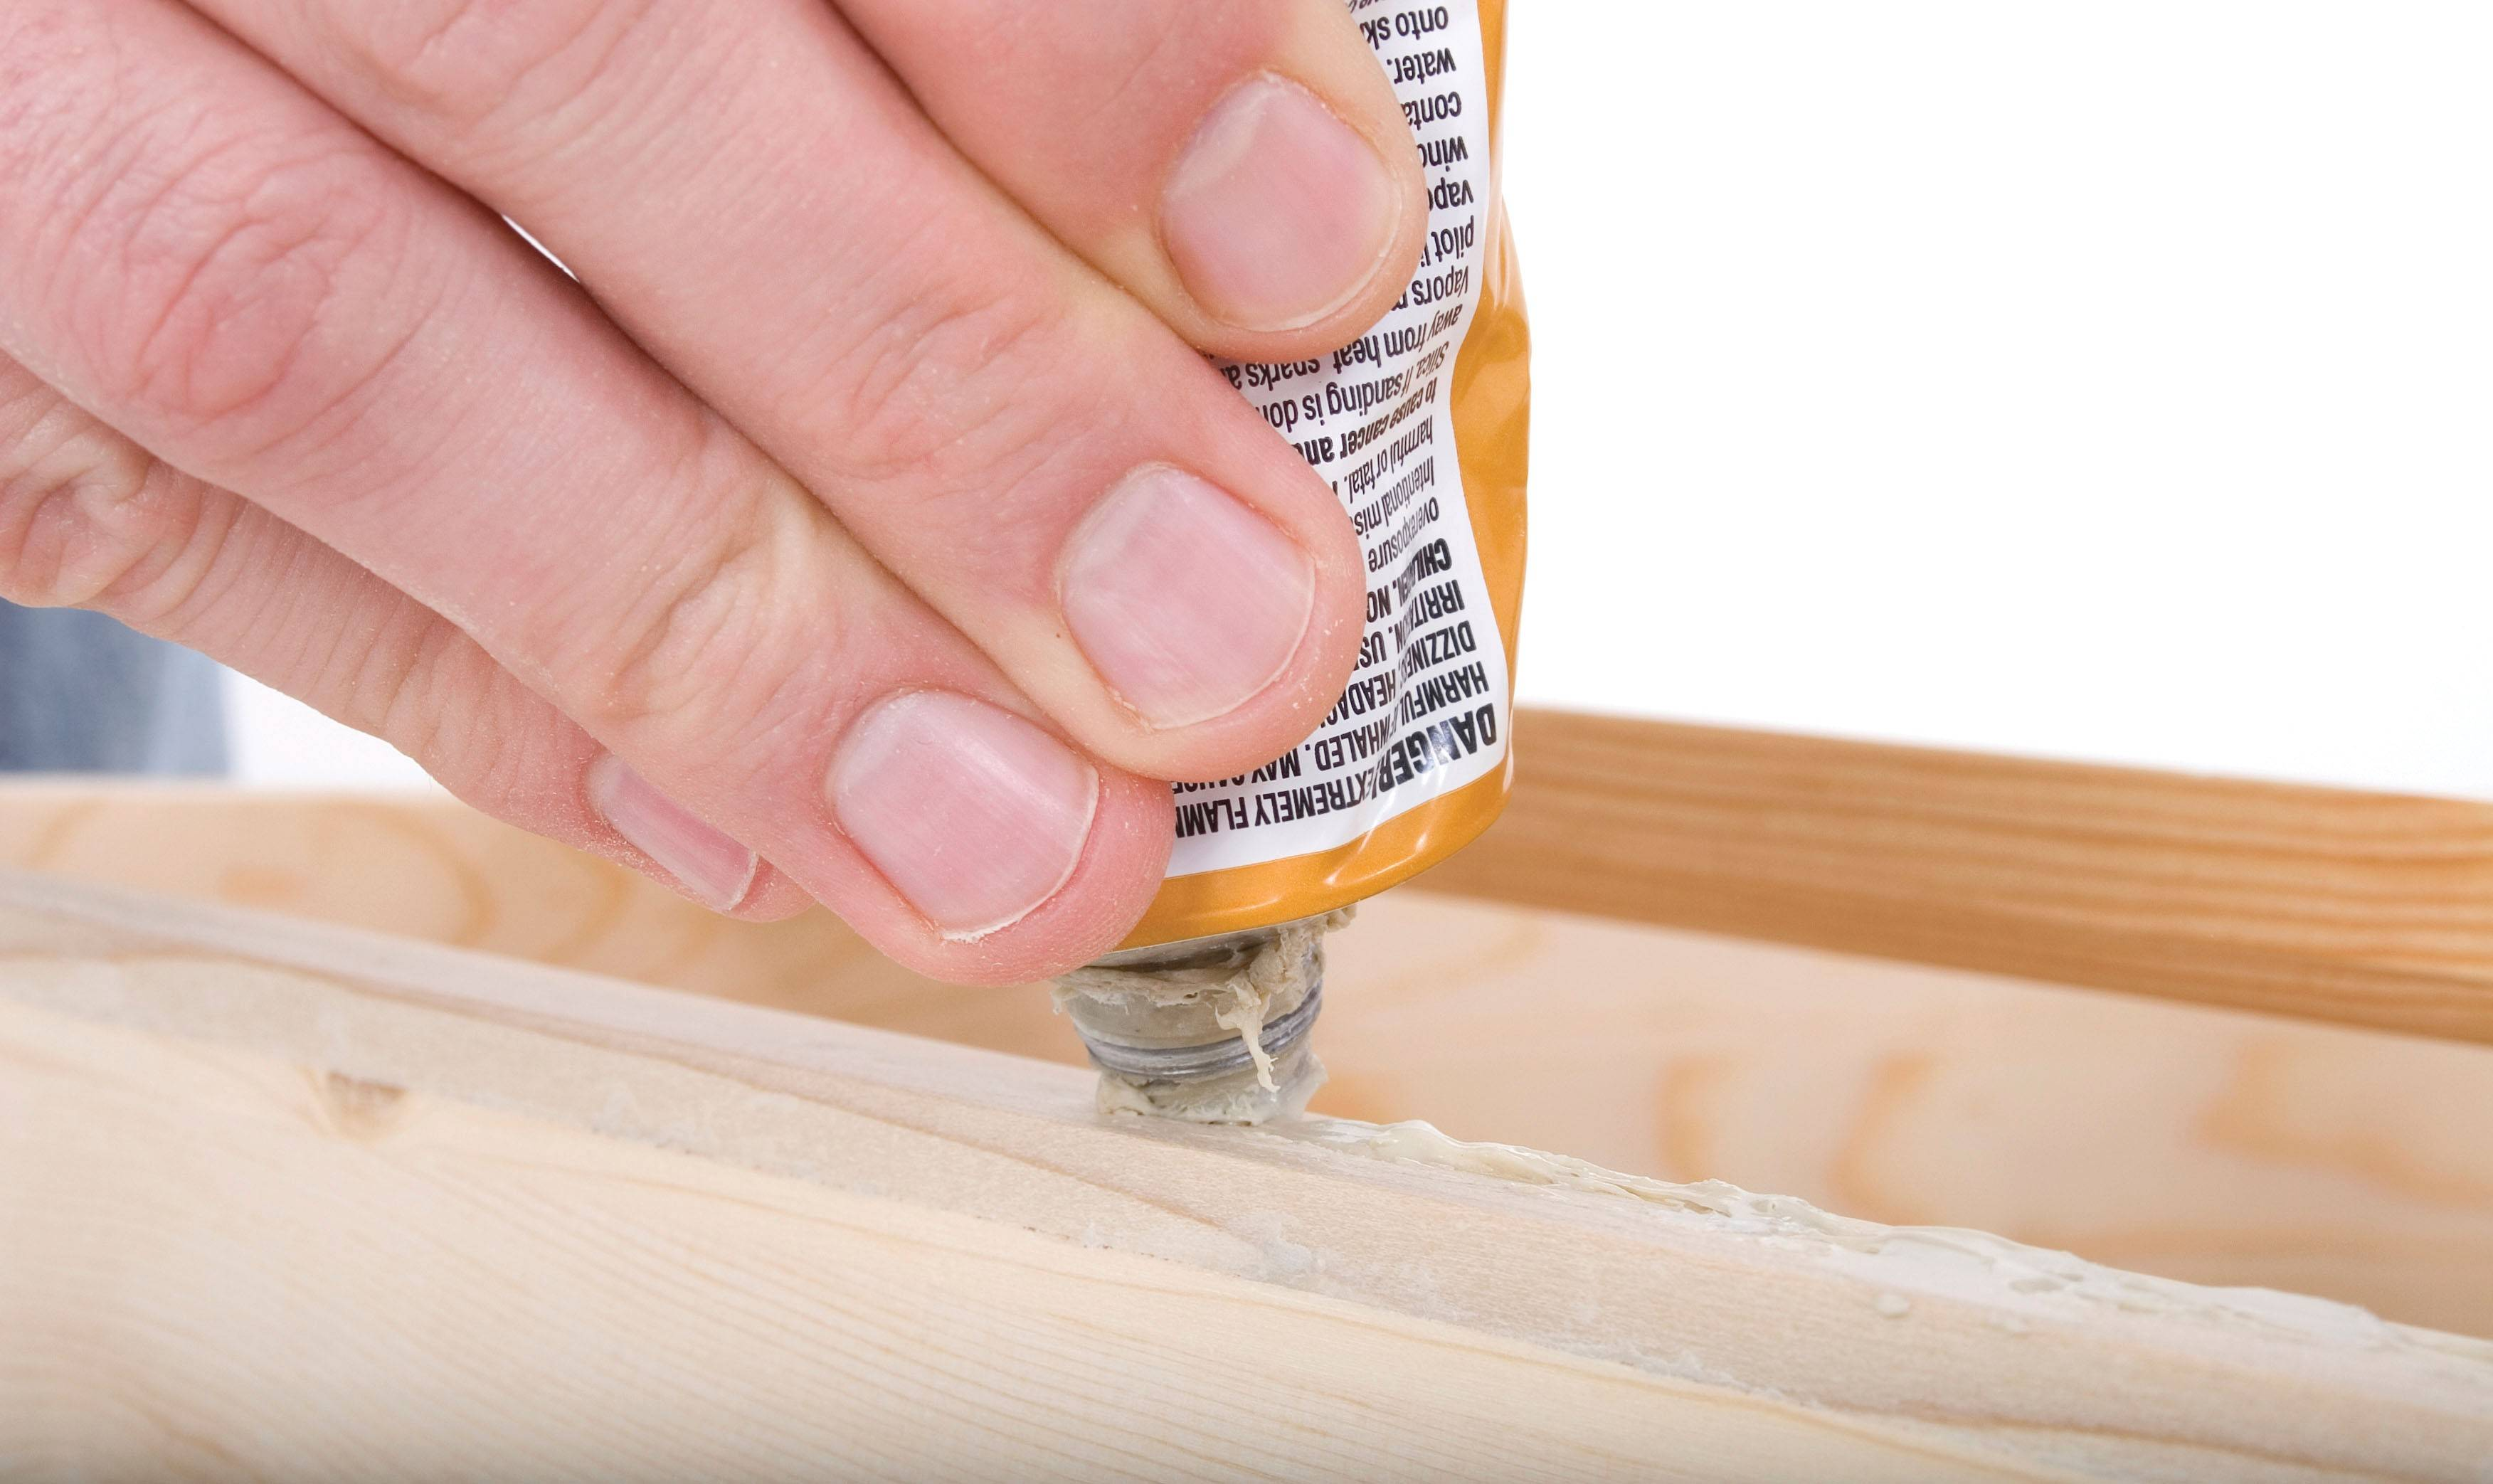 Use the right adhesive for your job, be it rubber cement, wood glue or a super glue.